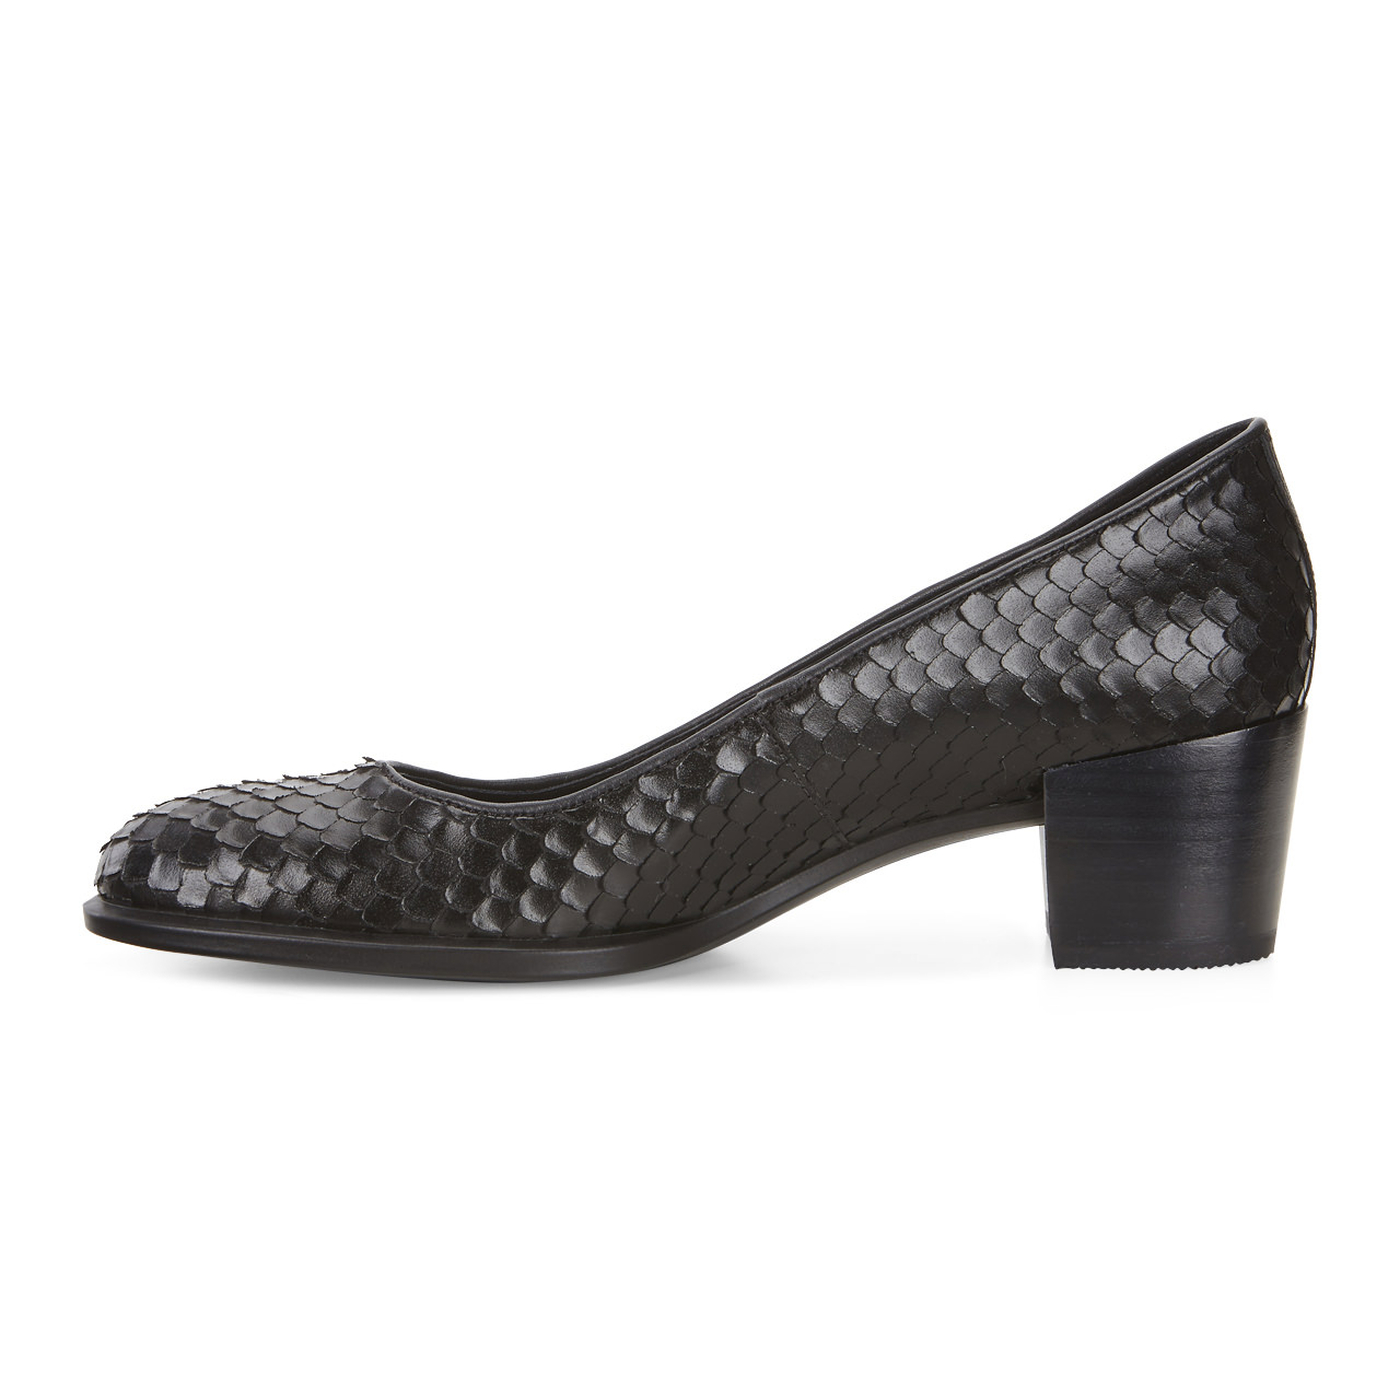 ECCO SHAPE Modern Pump 35mm